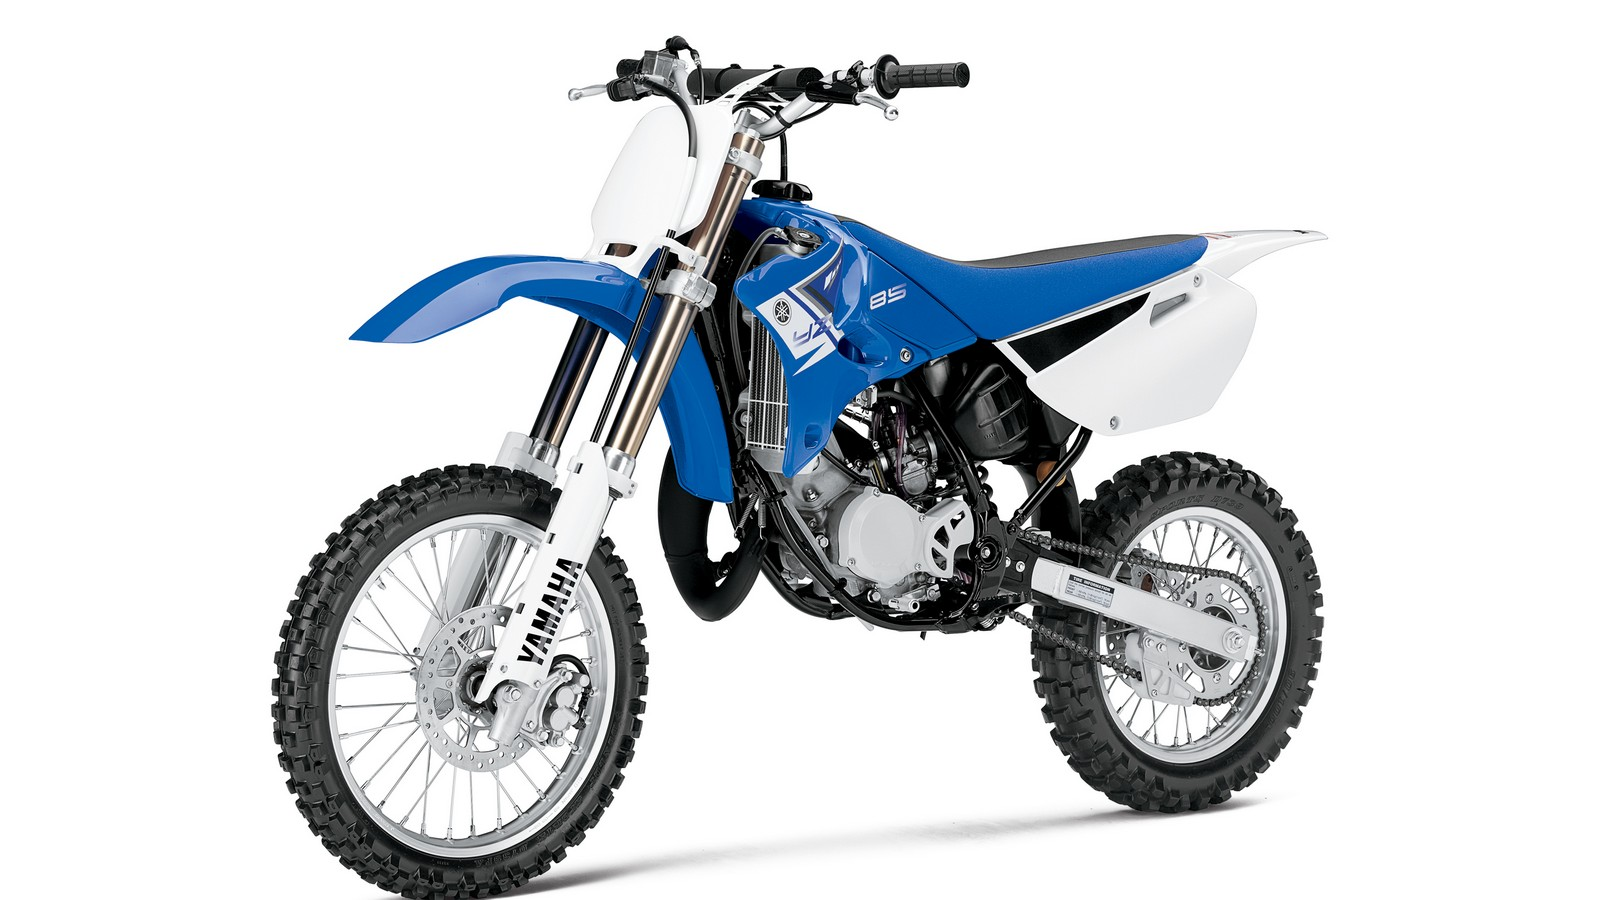 2013 yamaha yz85 review top speed for Yamaha yz85 top speed